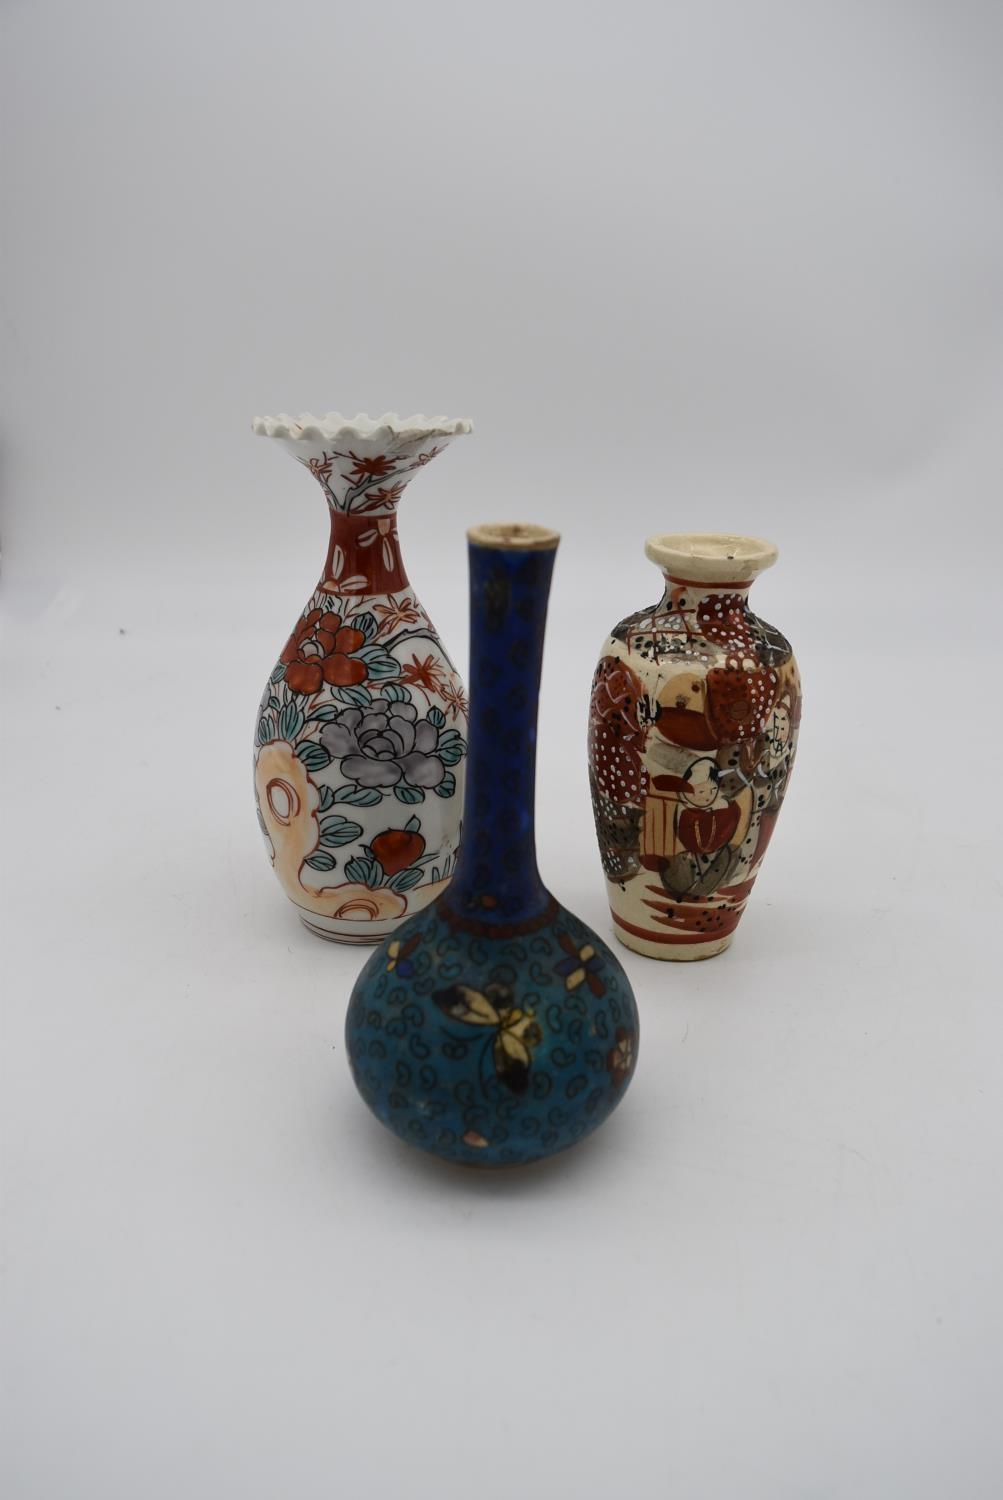 Three hand painted porcelain vintage Oriental vases. One decorated with a floral design, a ruffled